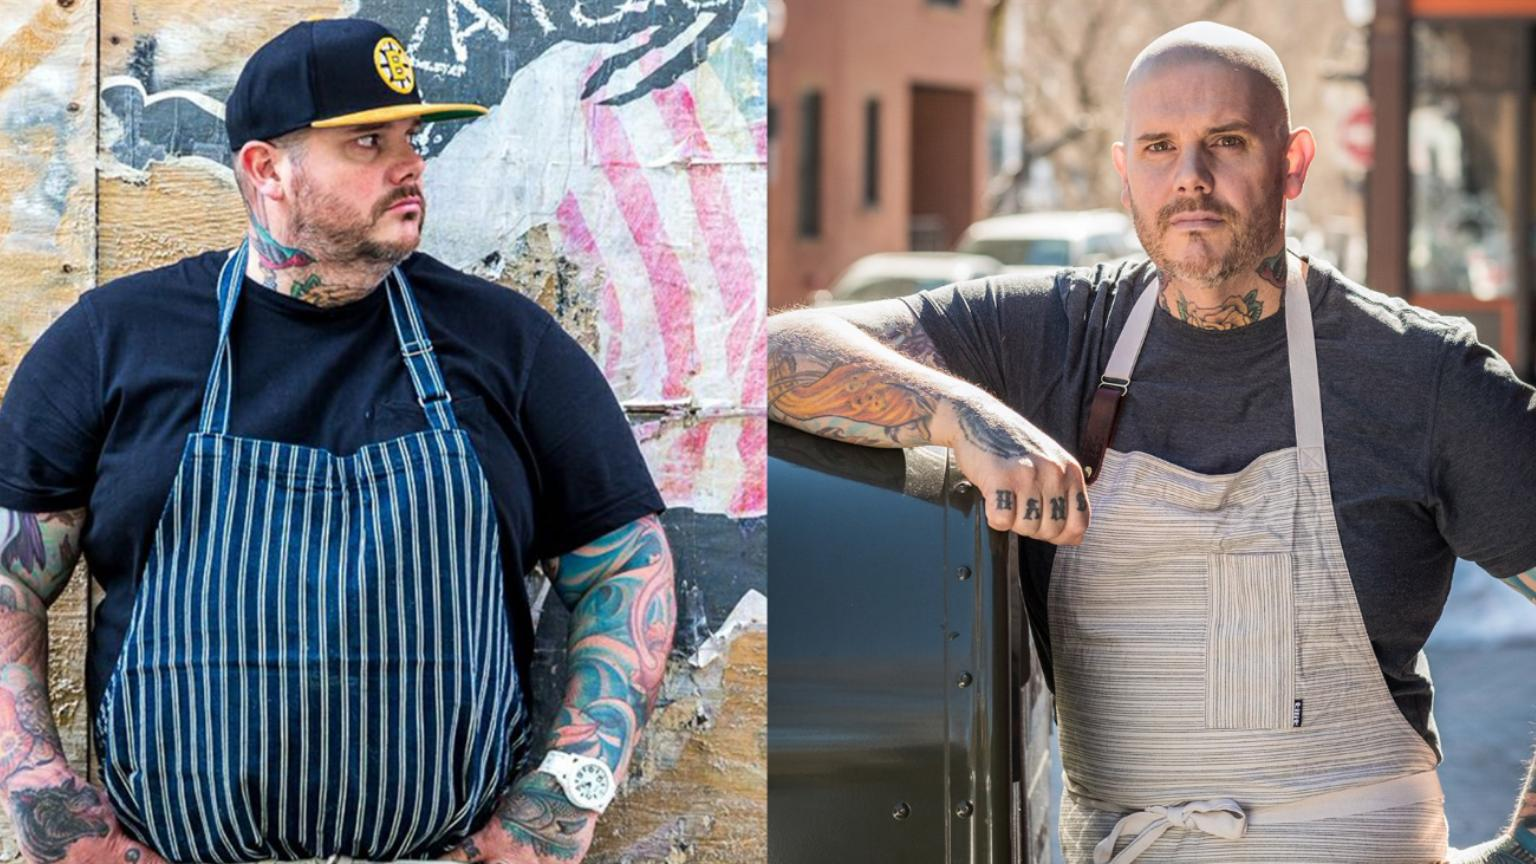 A Chef Lost 200 Pounds by Making This Delicious Recipe